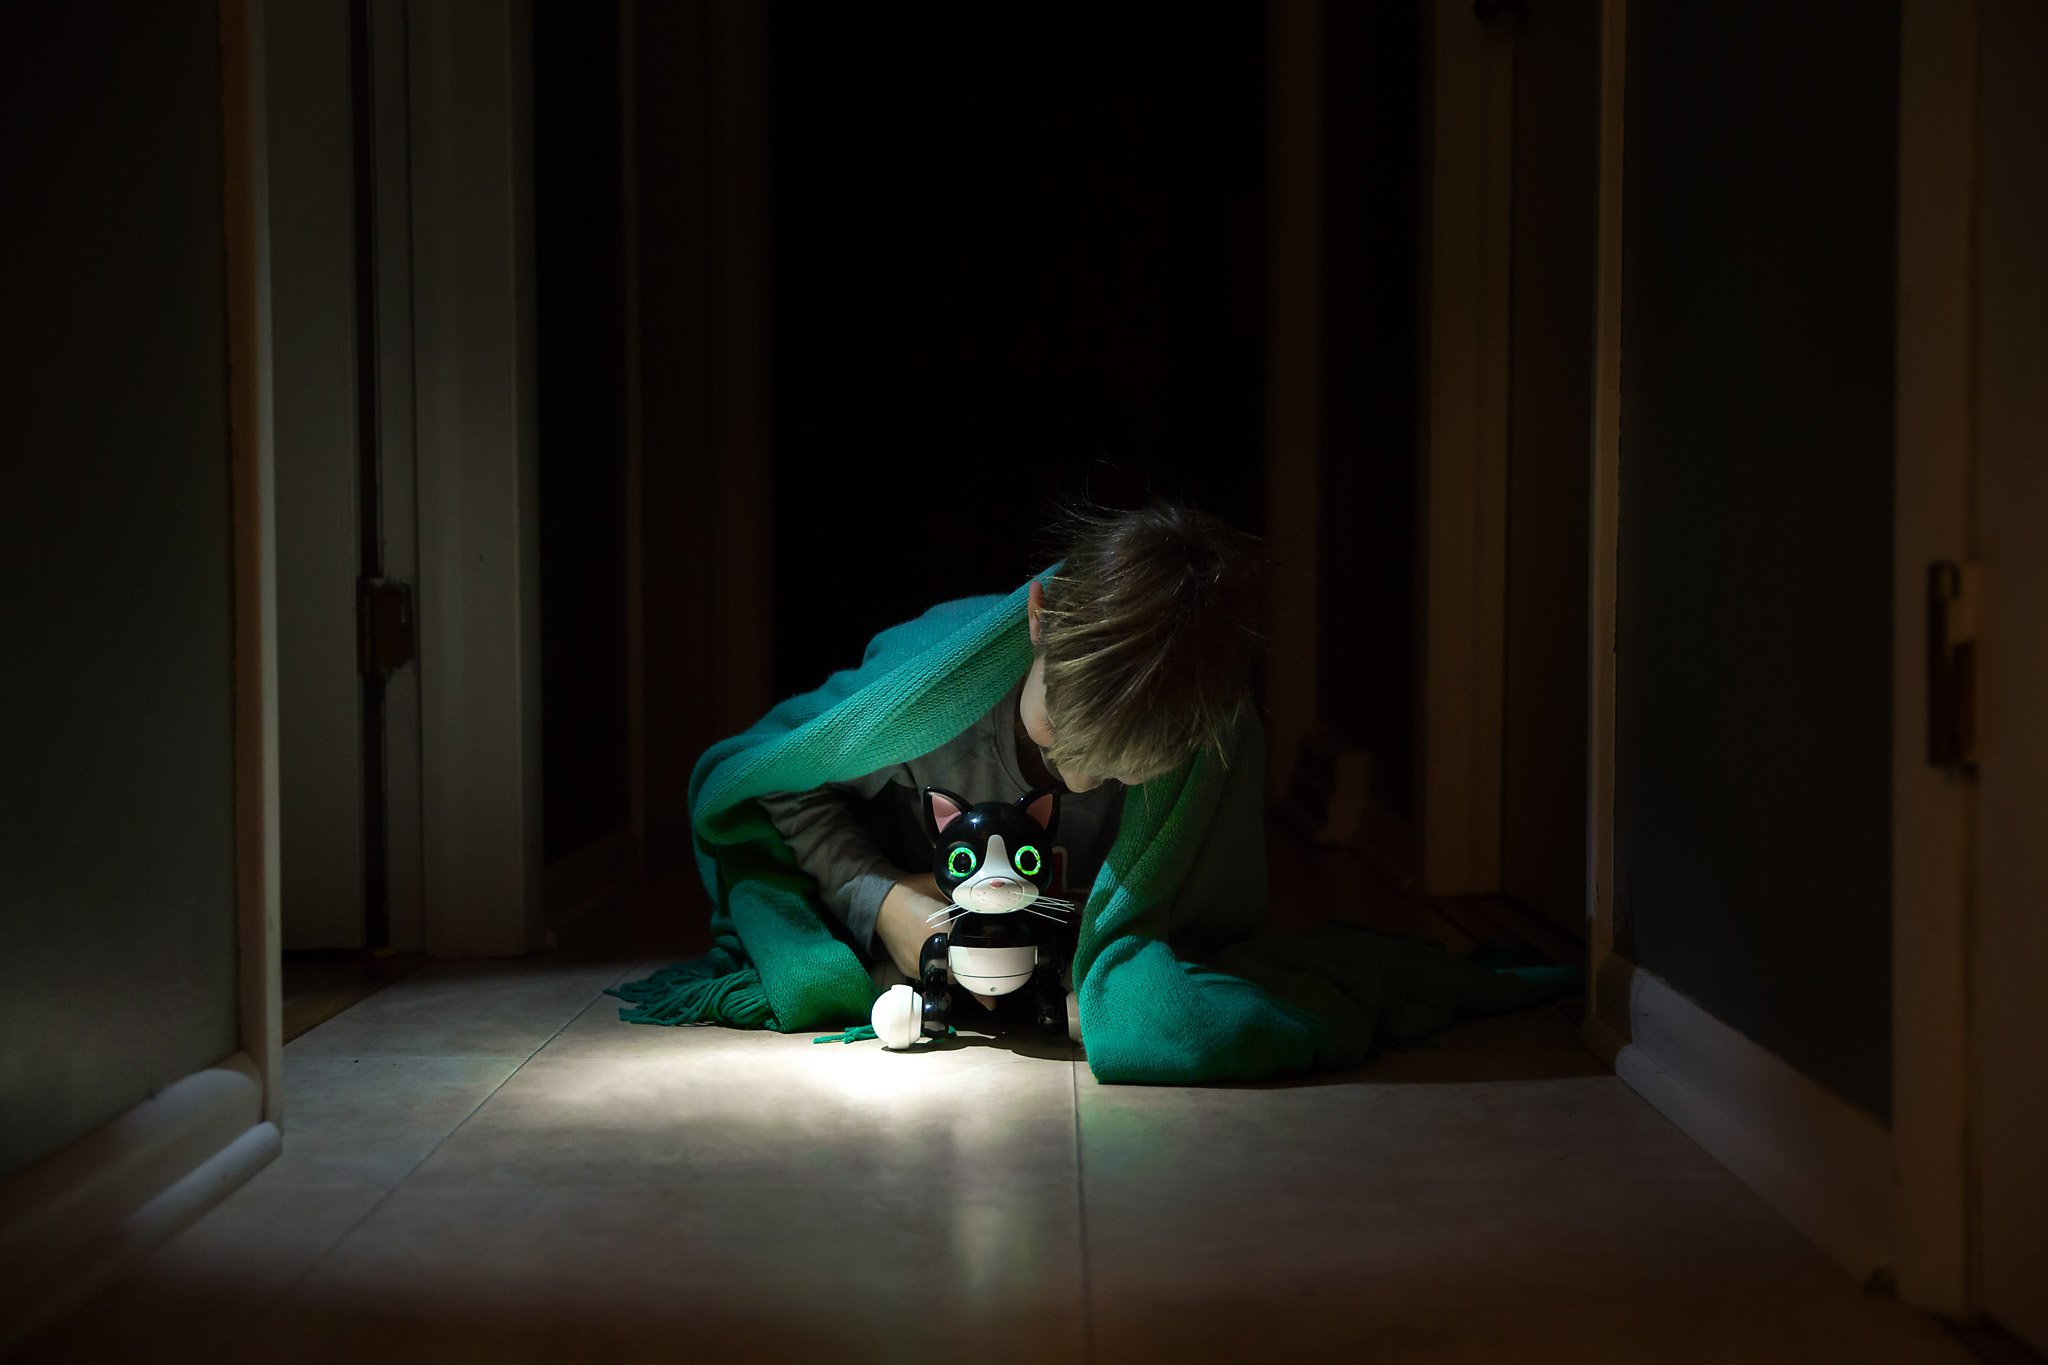 five year old boy with his green eyed electronic cat toy in a dark hallway